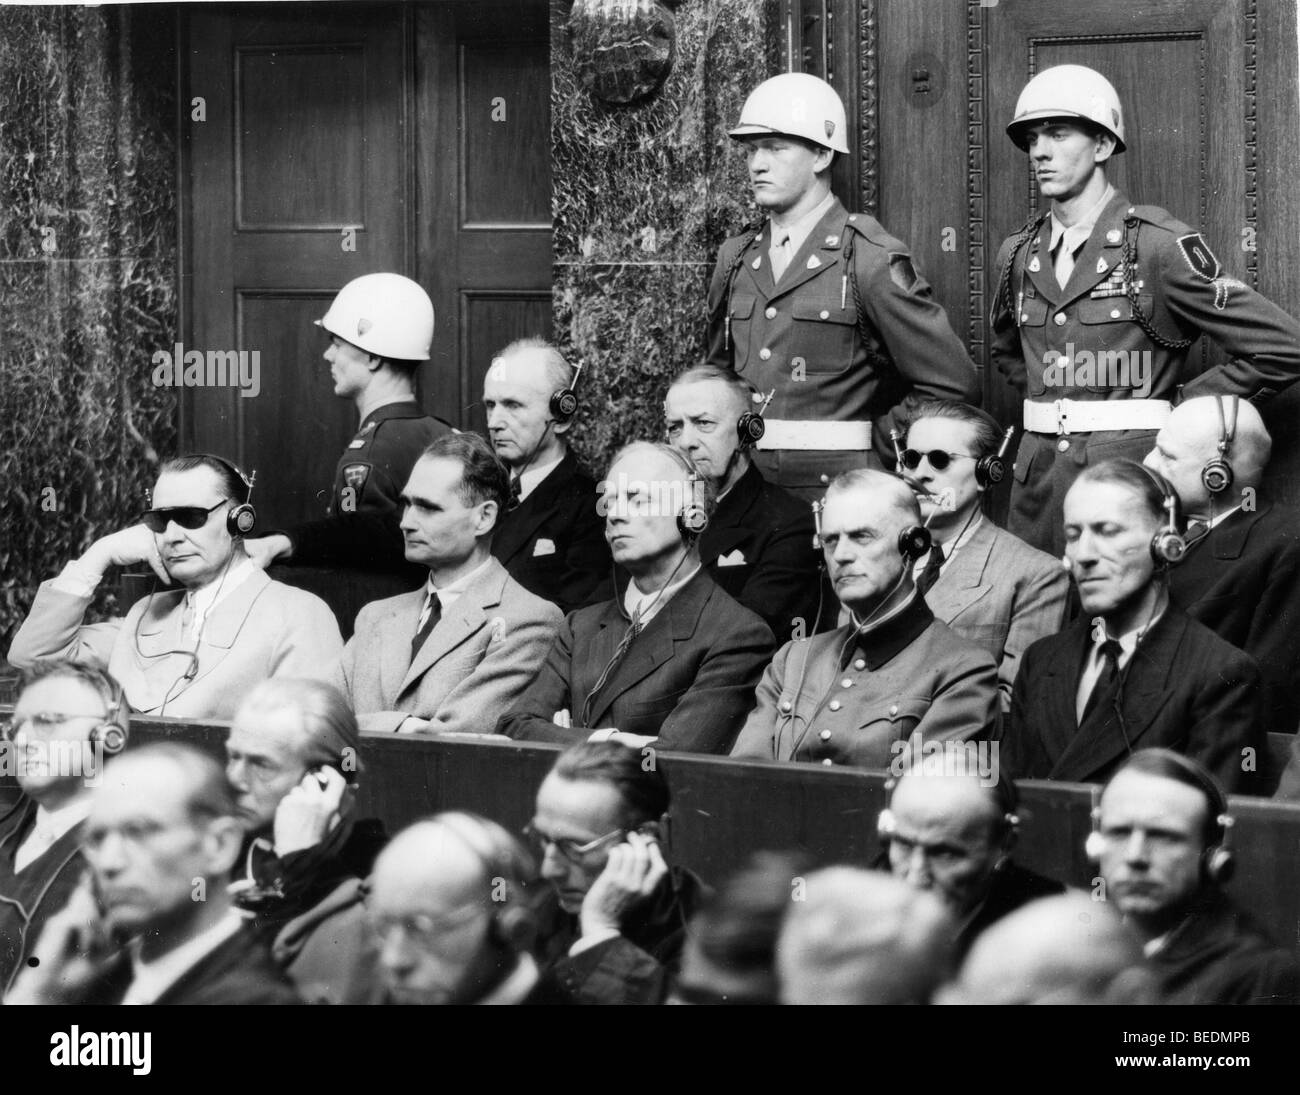 Some of the chief defendants seen seated in the dock at Nuremberg during the greatest war trial in history Stock Photo